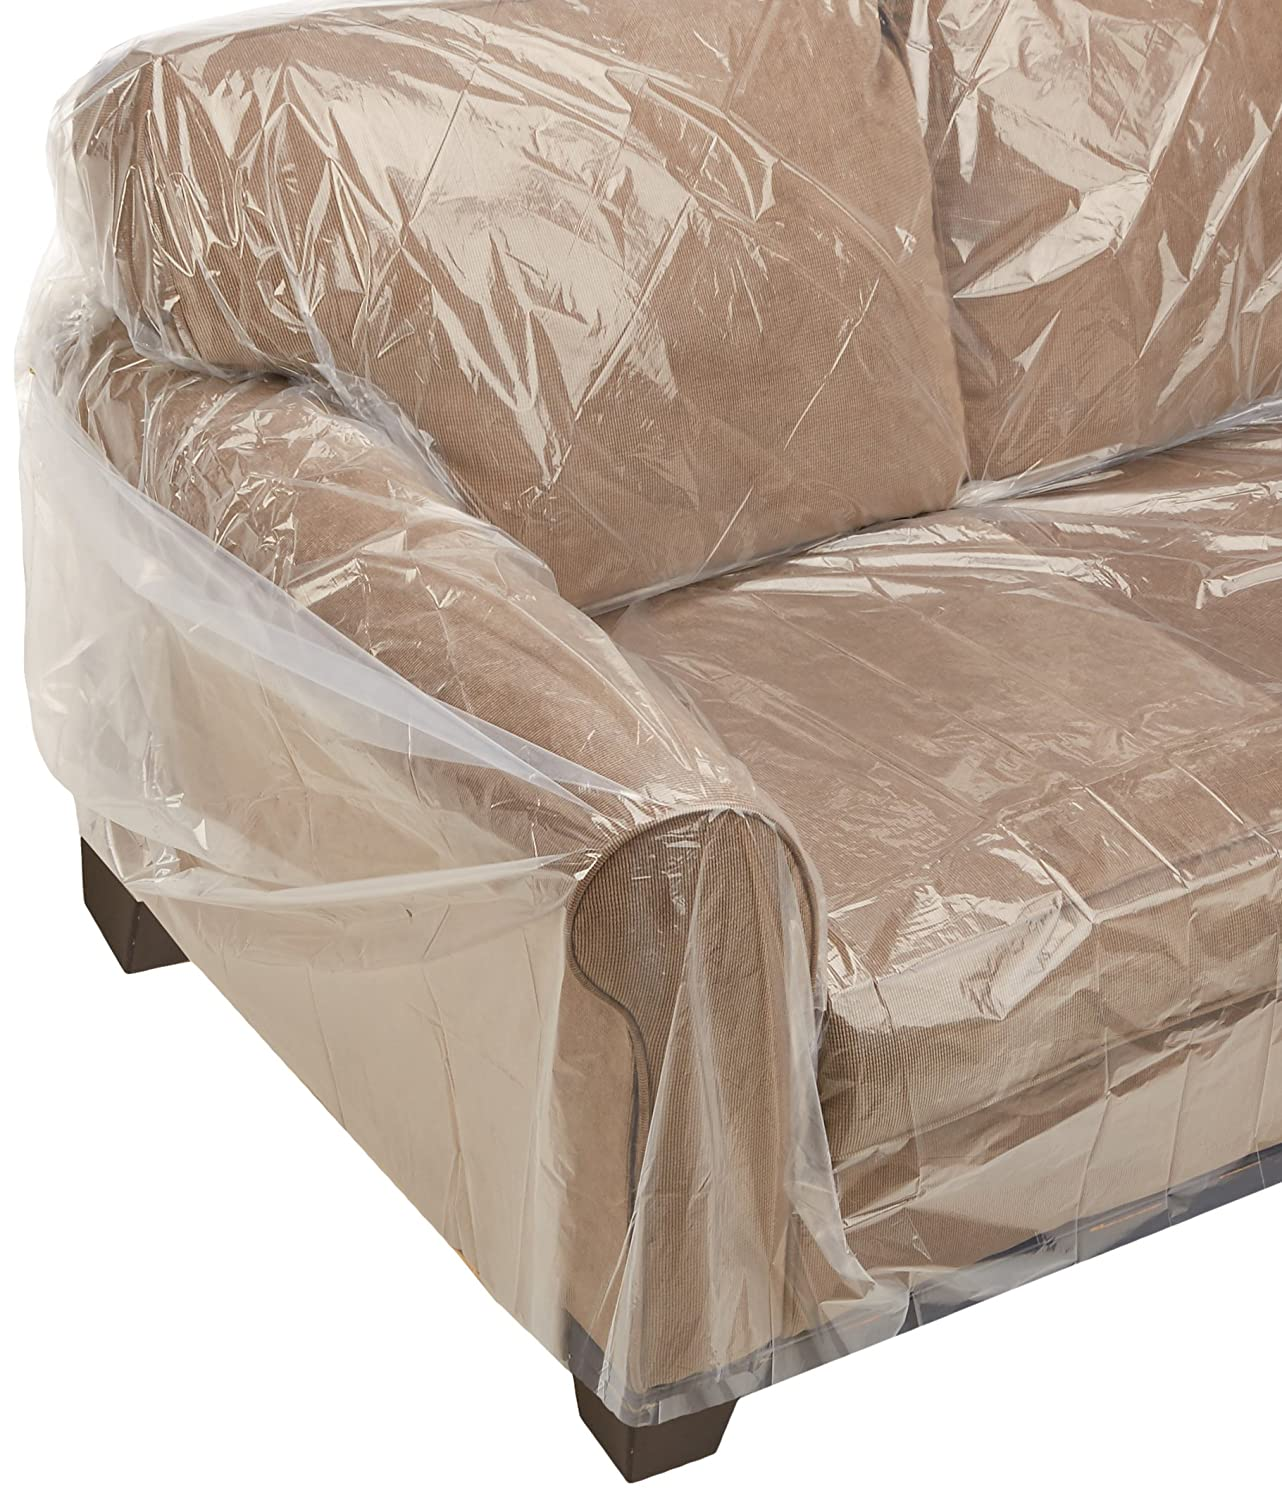 Amazon Furniture Sofa Couch Cover 1 Pack protects during